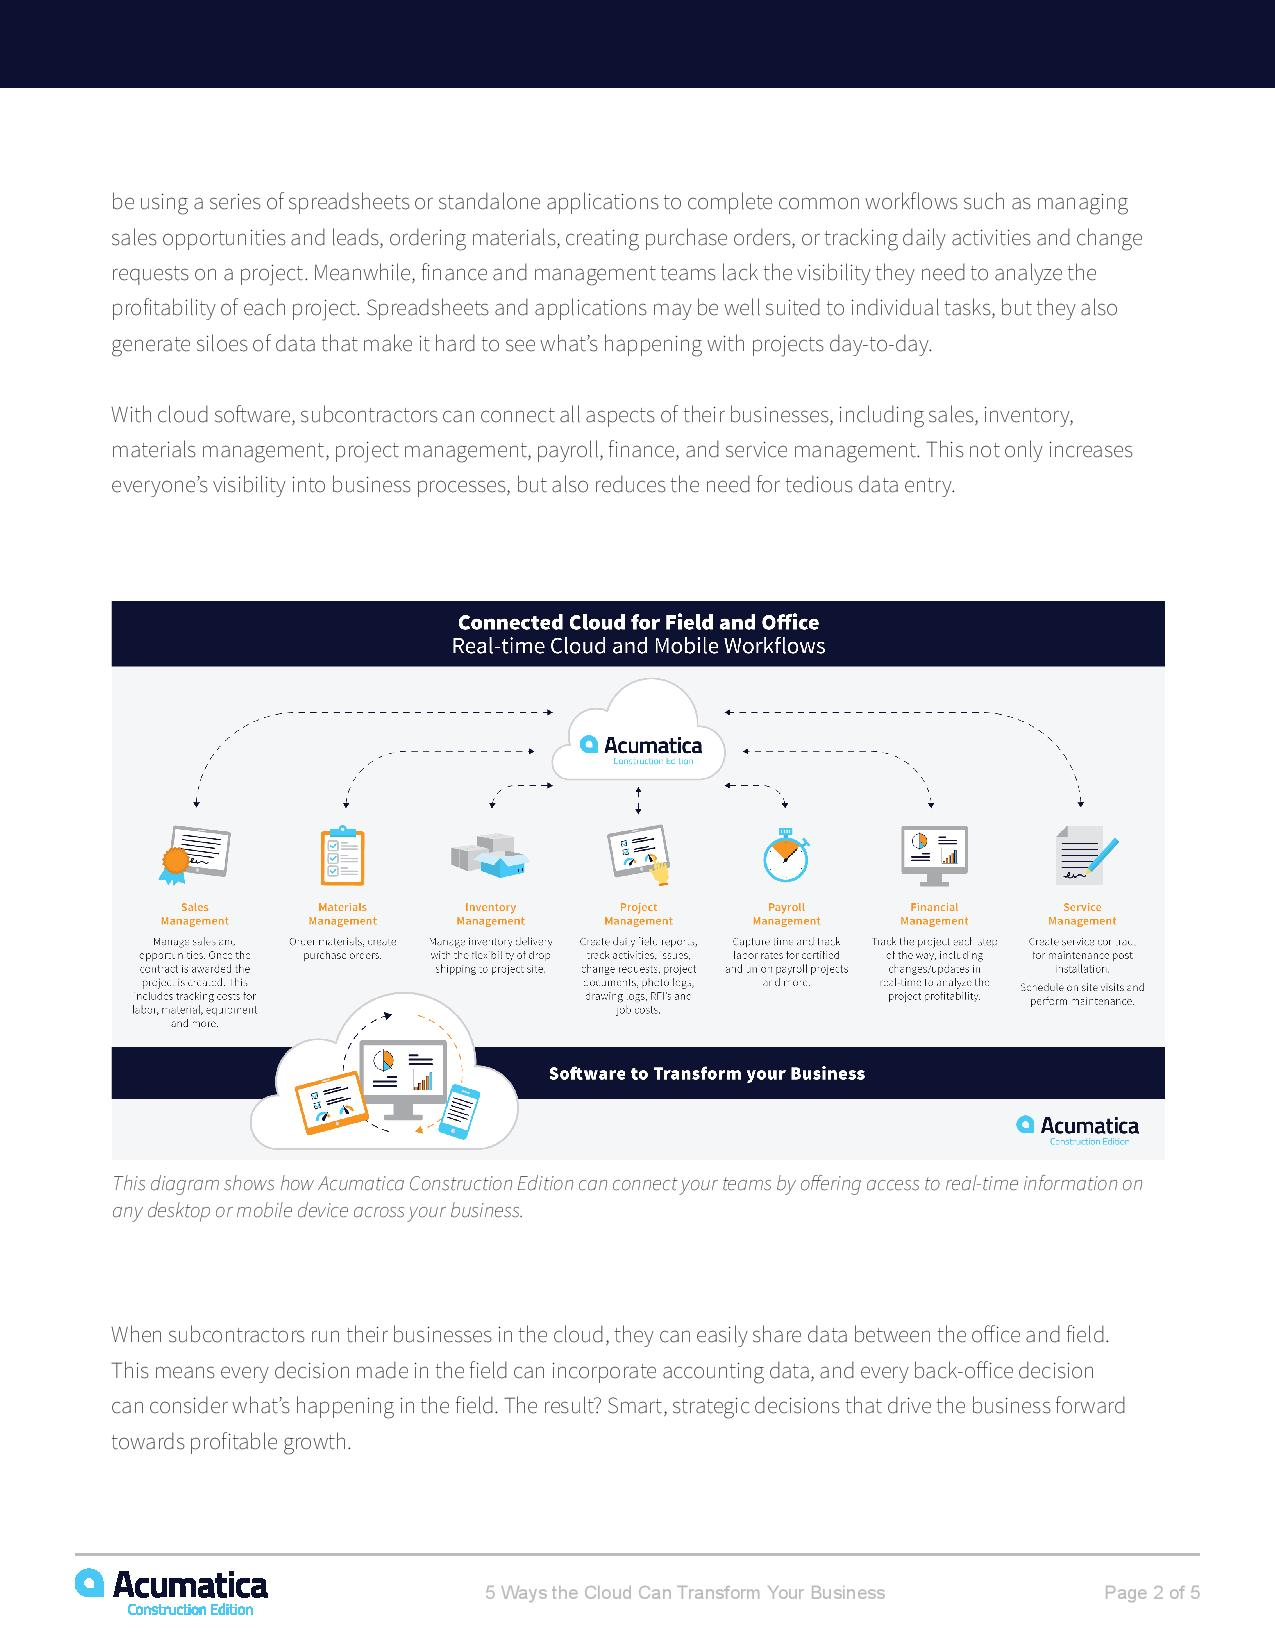 How Cloud Construction and Accounting Software Can Transform Your Business, page 1